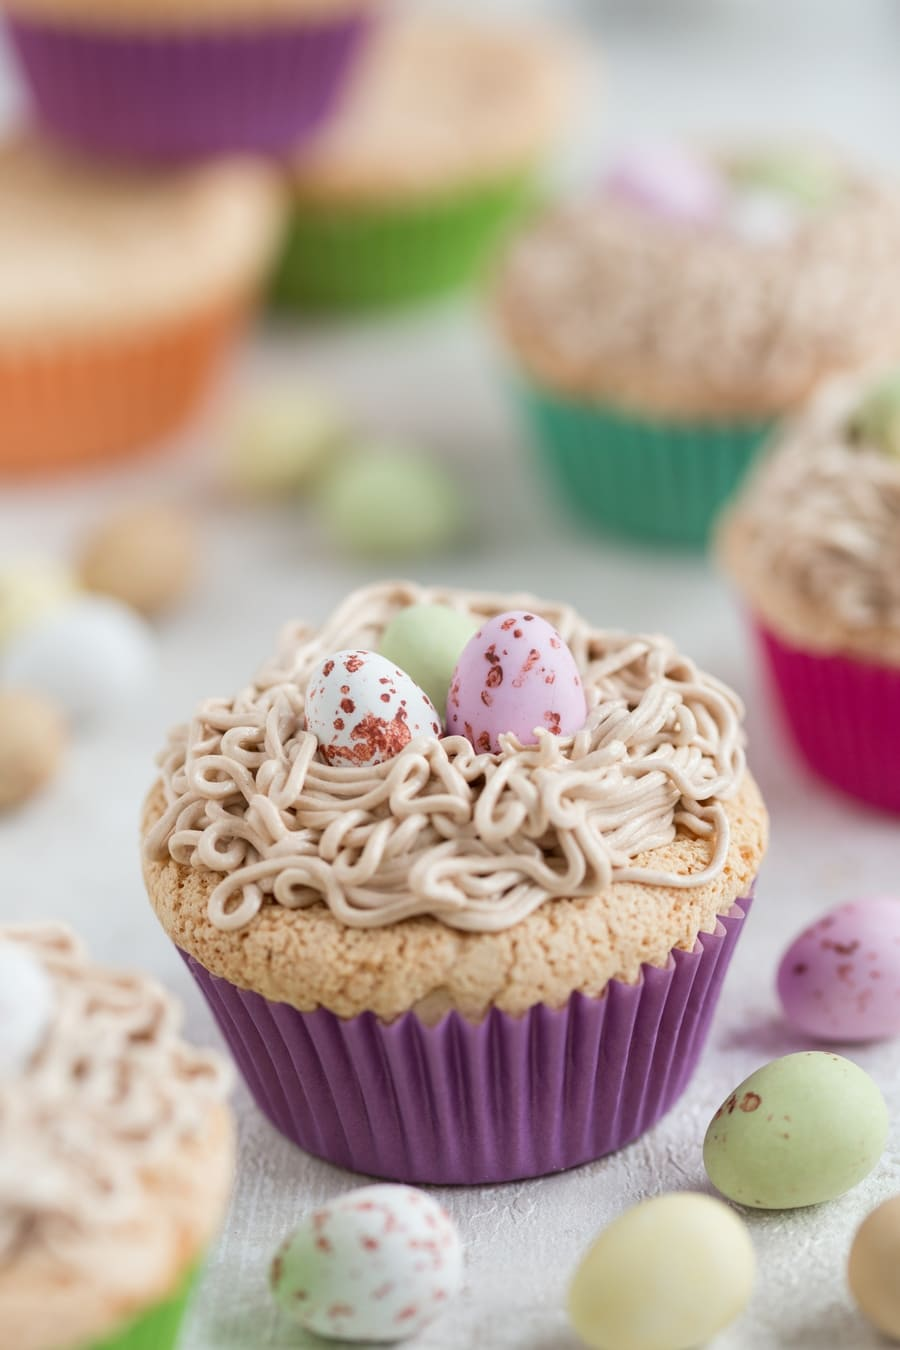 Portuguese sponge cake cupcakes with buttercream bird's nest